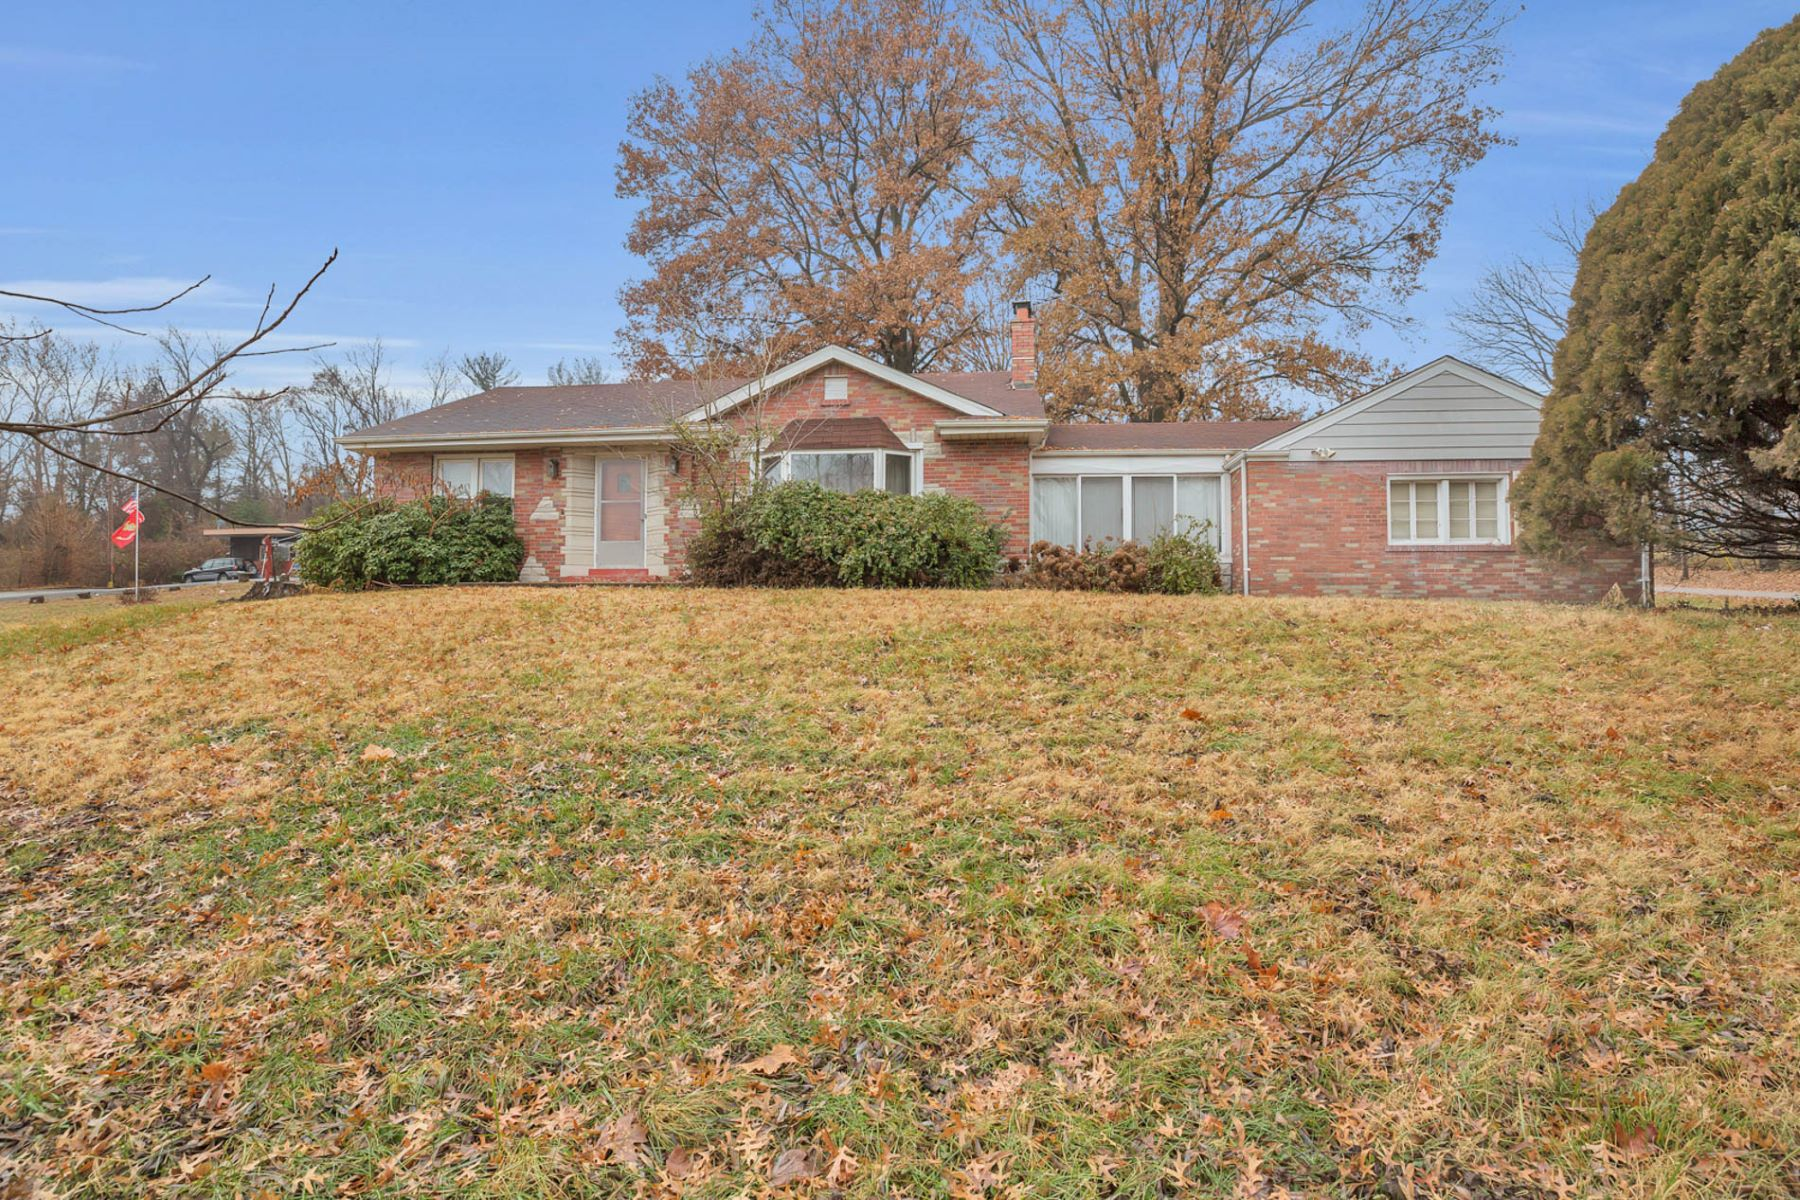 Single Family Home for Sale at Halls Ferry Rd 10361 Halls Ferry Rd St. Louis, Missouri 63136 United States